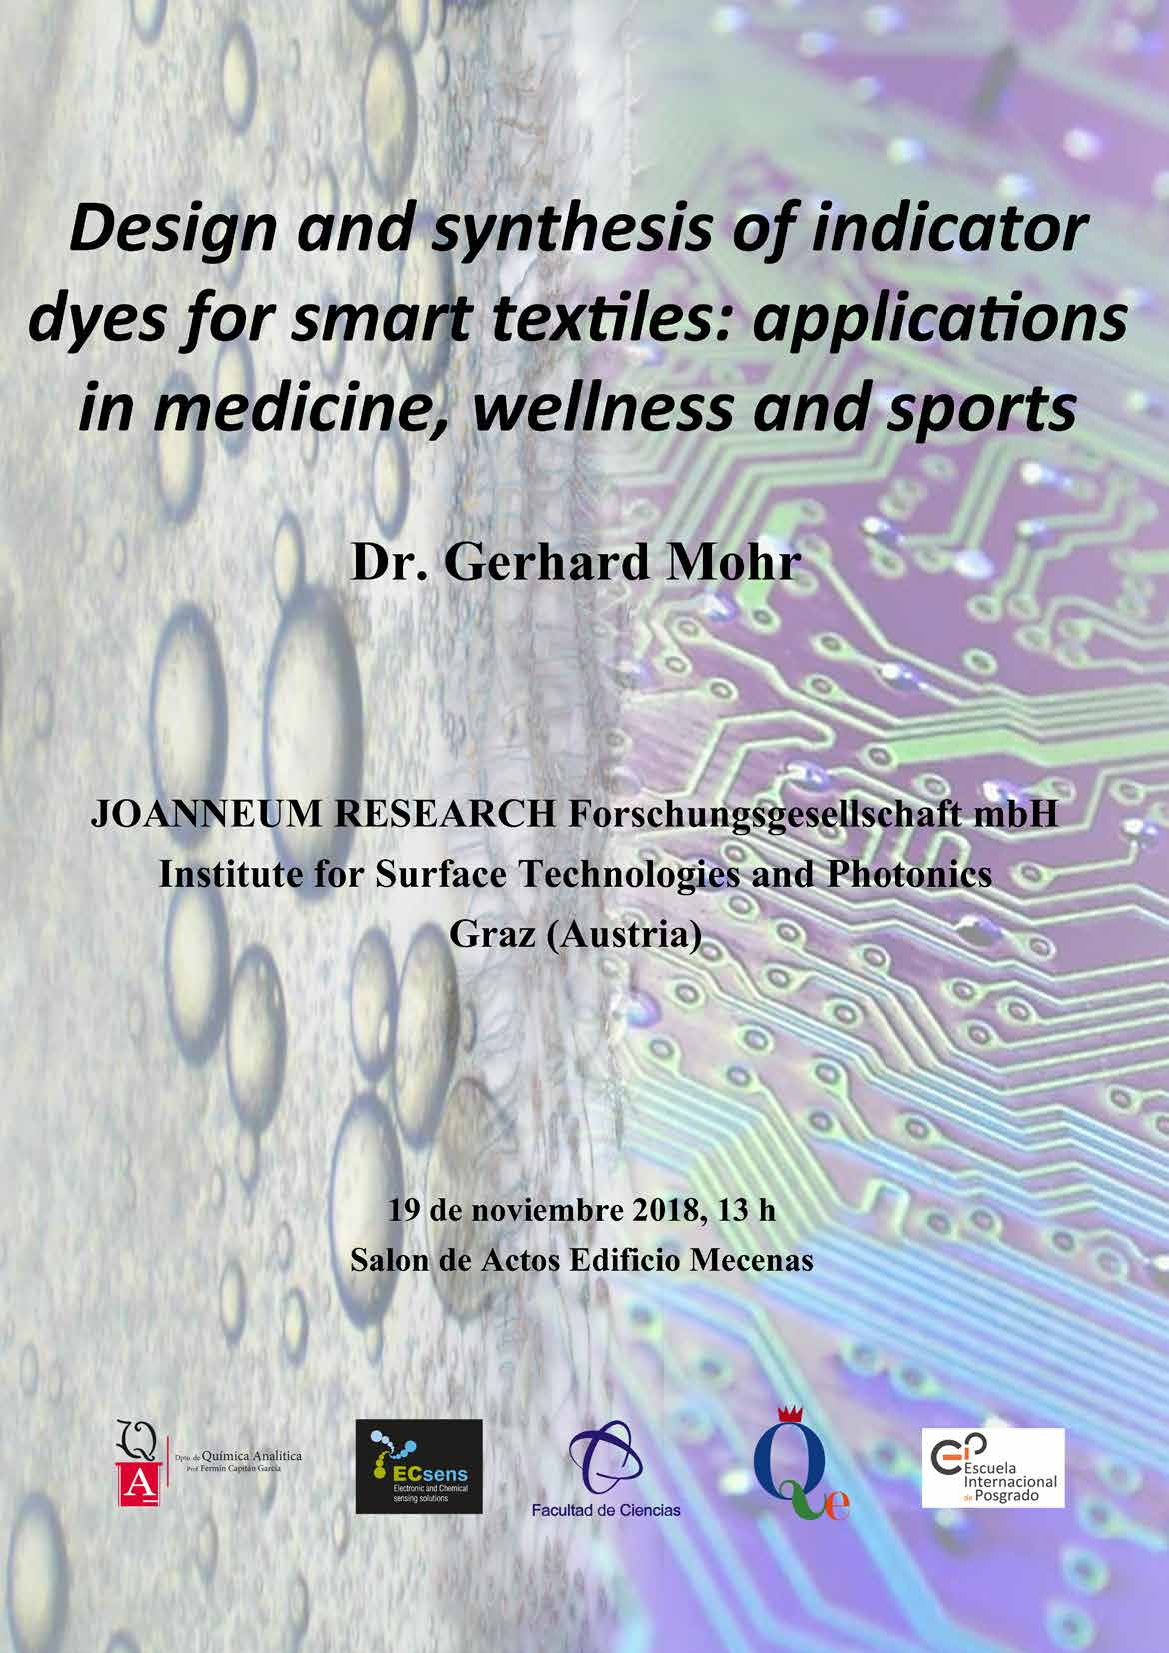 Design and synthesis of indicator dyes for smart textiles: applications in medicine, wellness and sports.